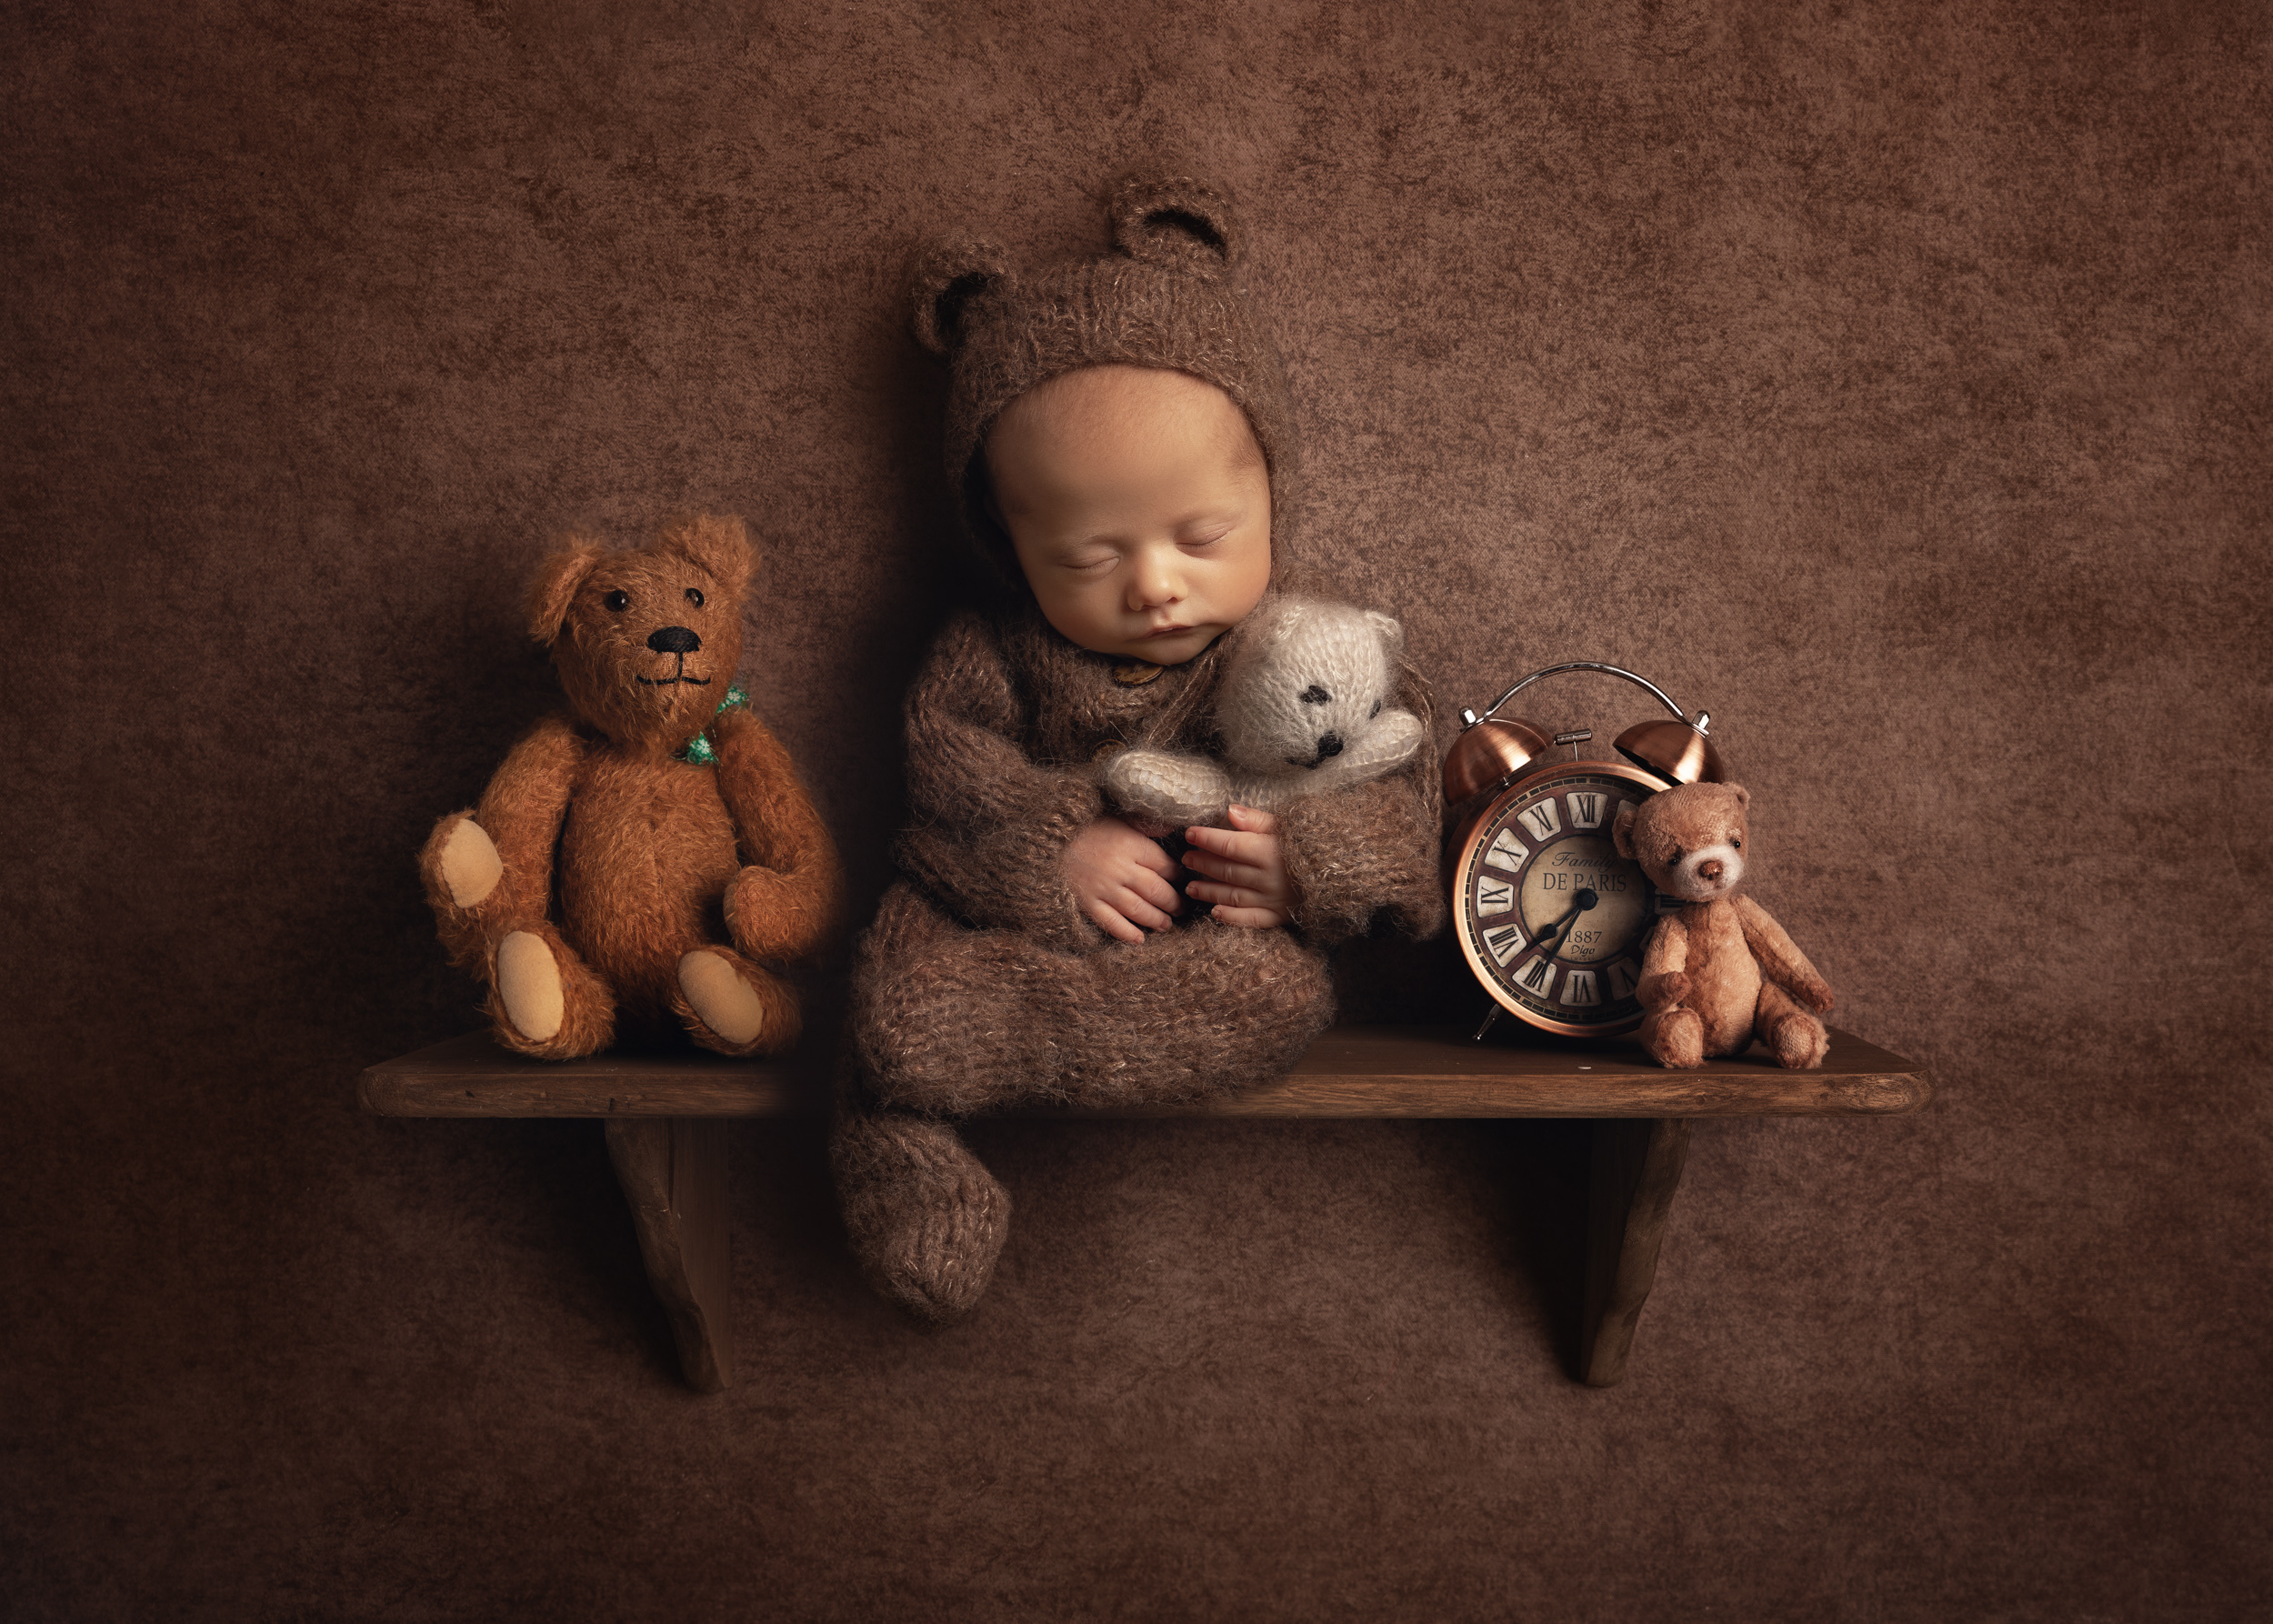 newborn baby dressed as a teddy bear sitting on a shelf with other bears by Cheshire newborn photographer in Sandbach